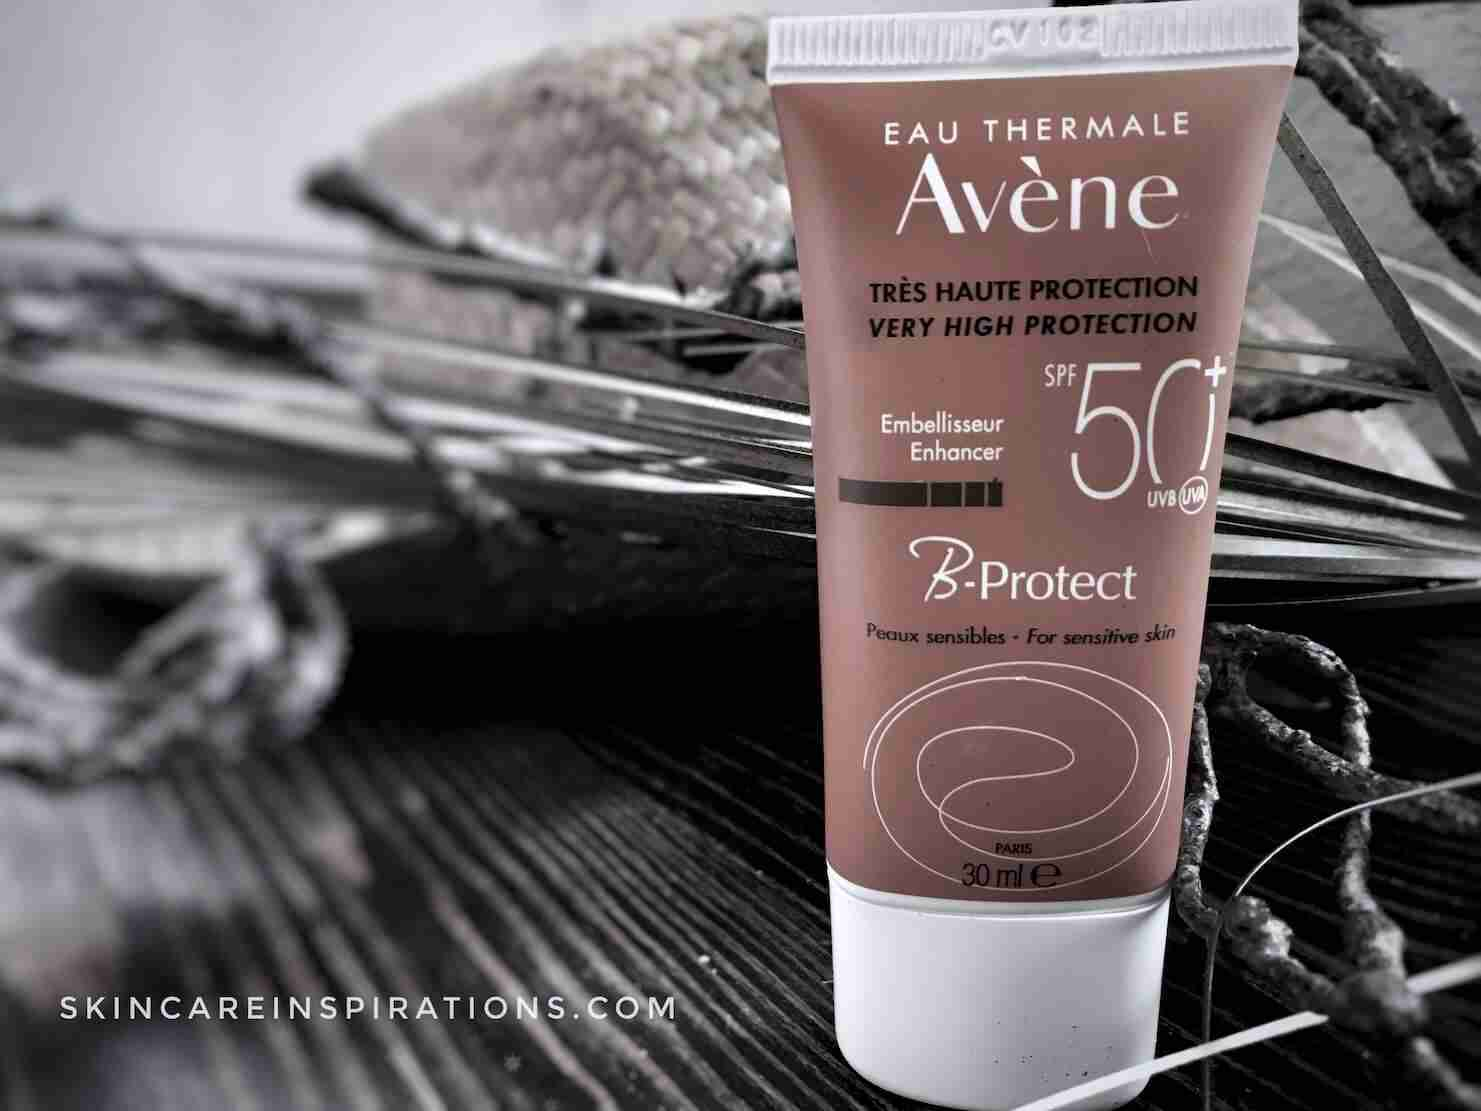 Avène BProtect SPF 50 Review